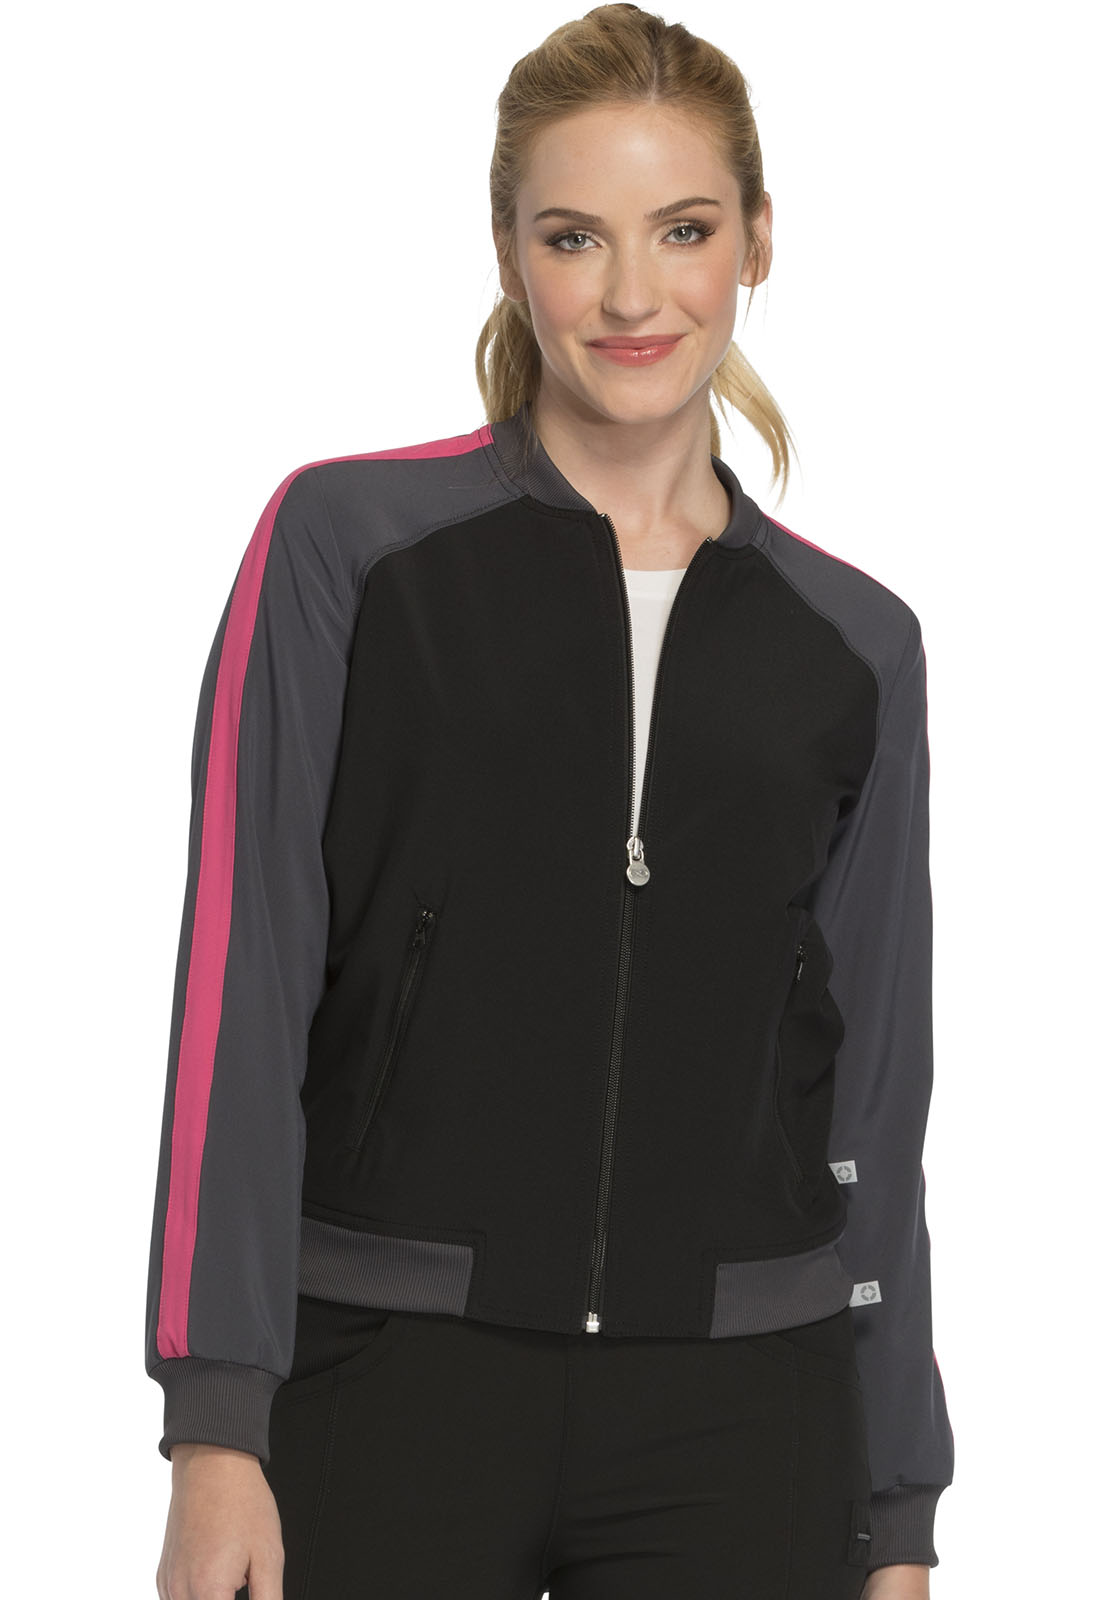 e316ecc8386 Infinity by Cherokee Zip Front Warm-up Jacket CK310A-BAPS from MP ...